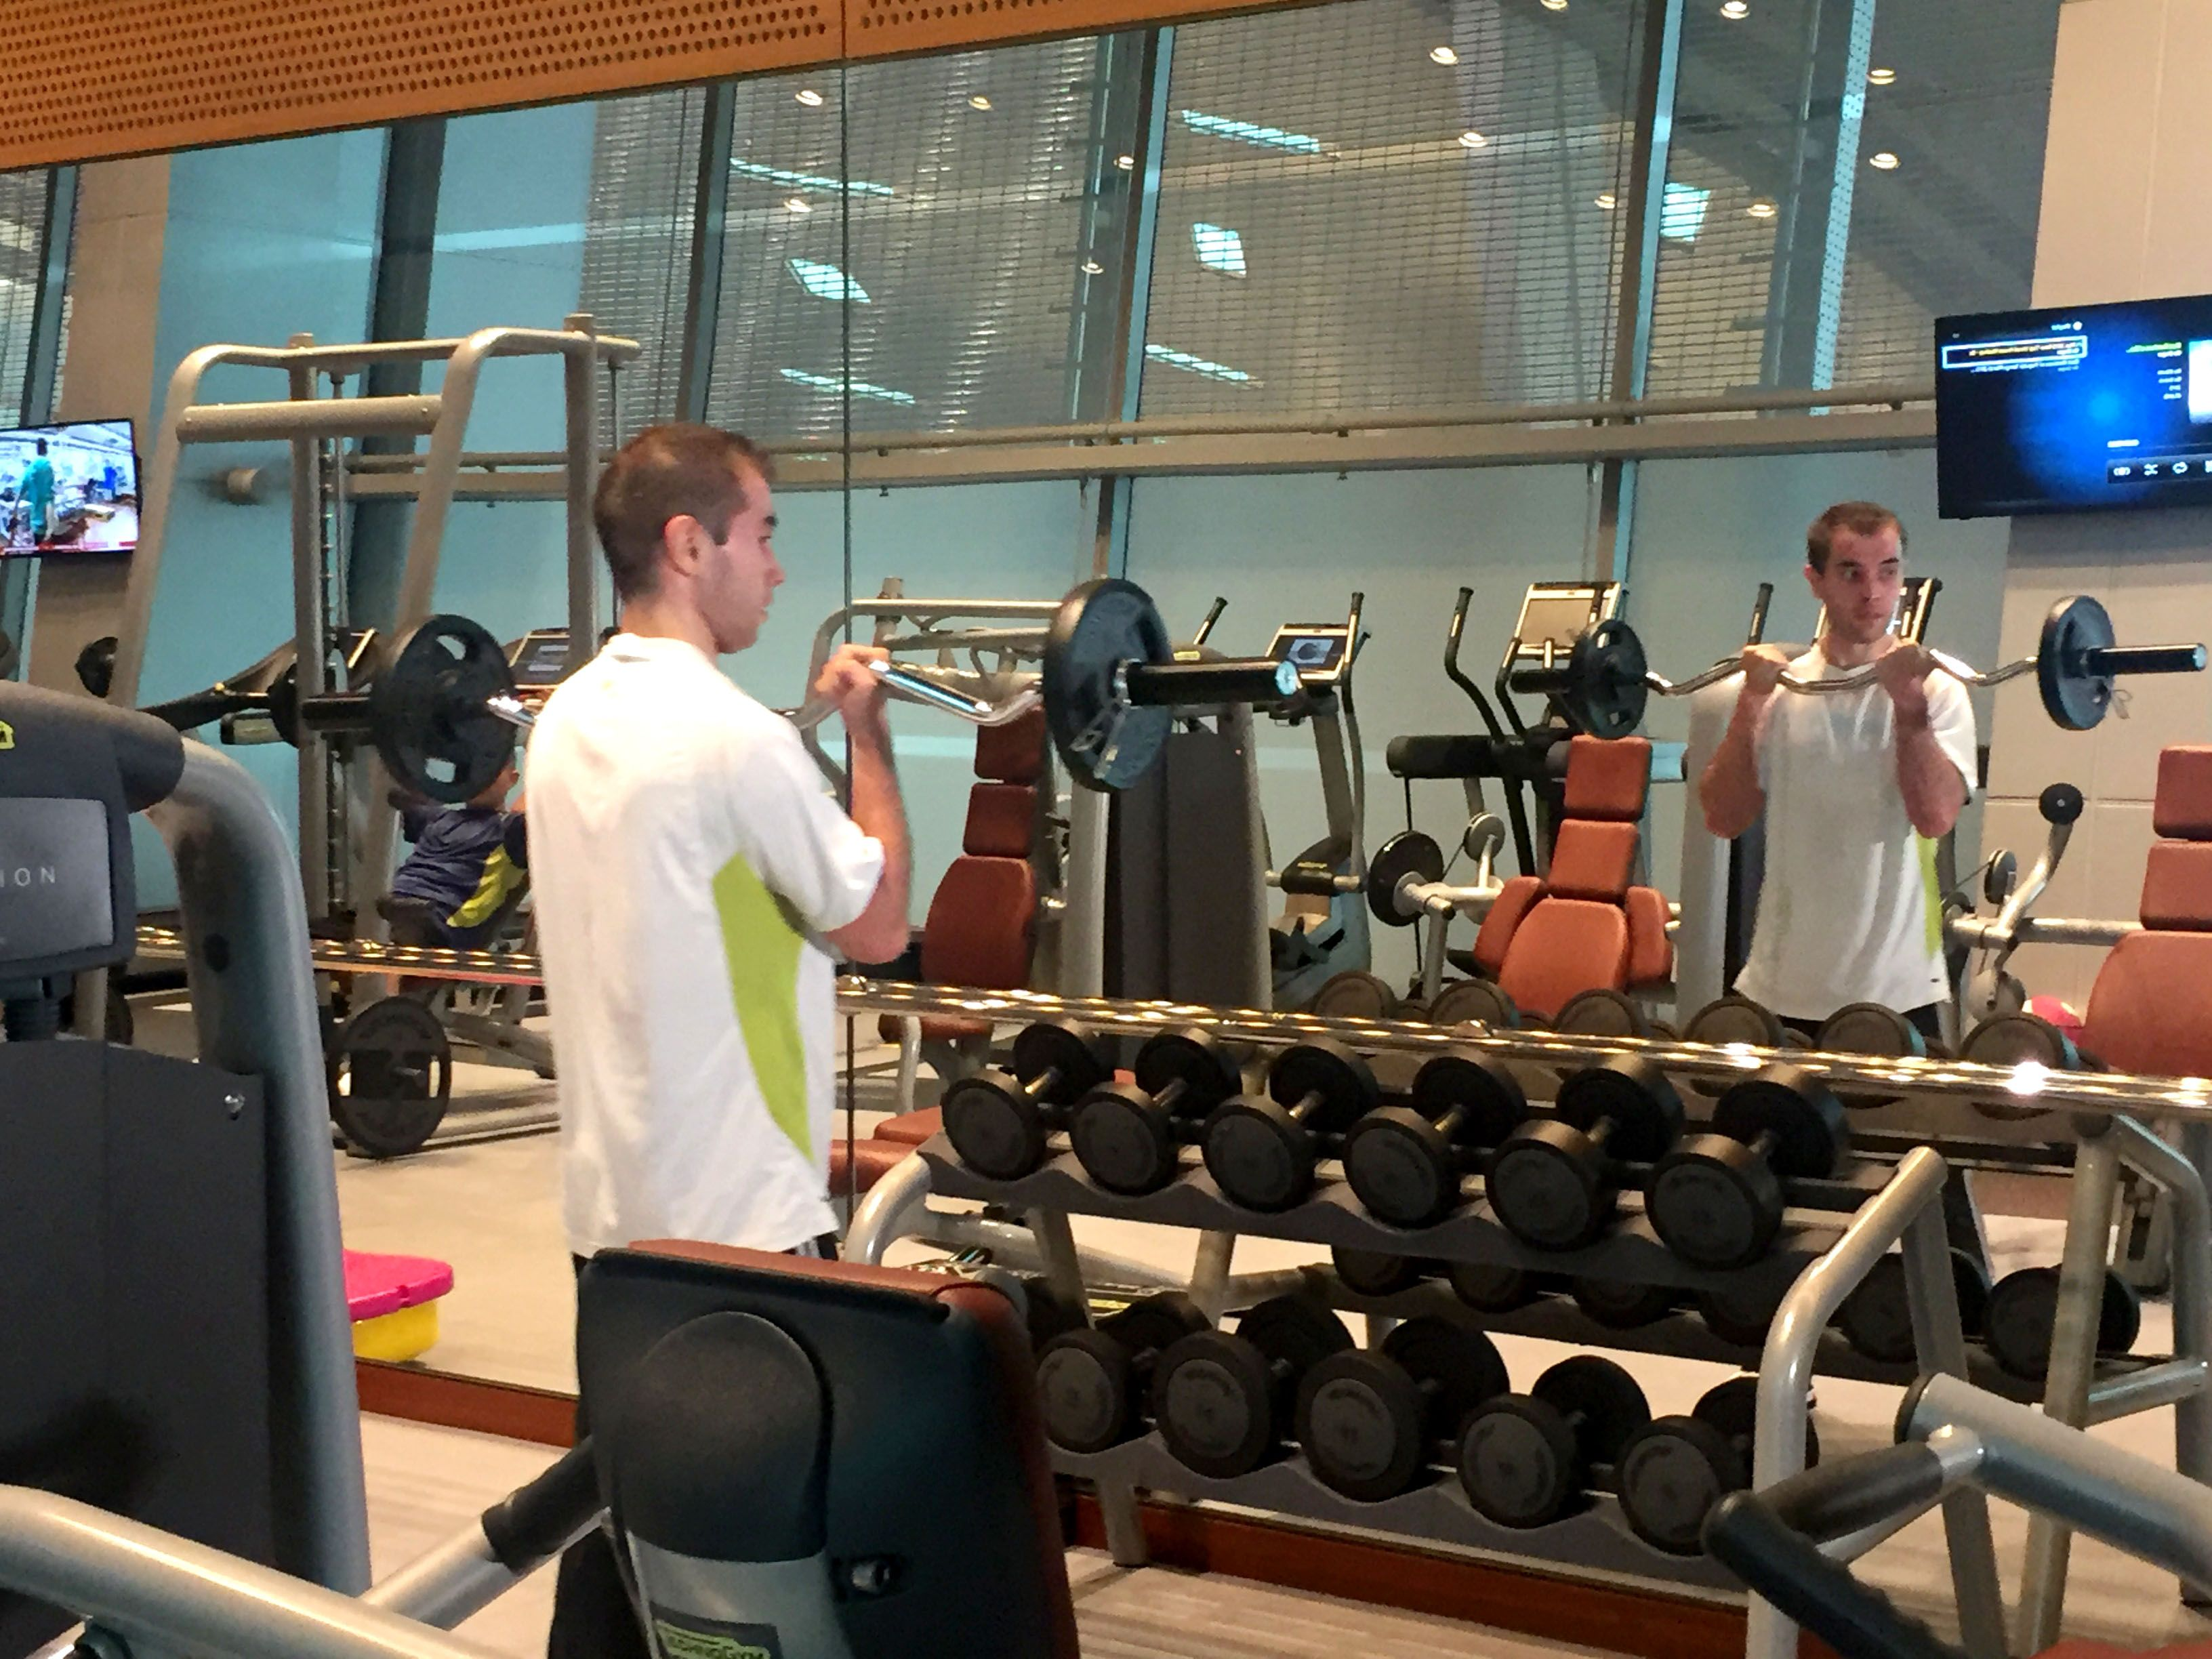 Improve your skin and muscle tone. Visit us at #Vitality Wellbeing & Fitness Centre and enjoy our gym!